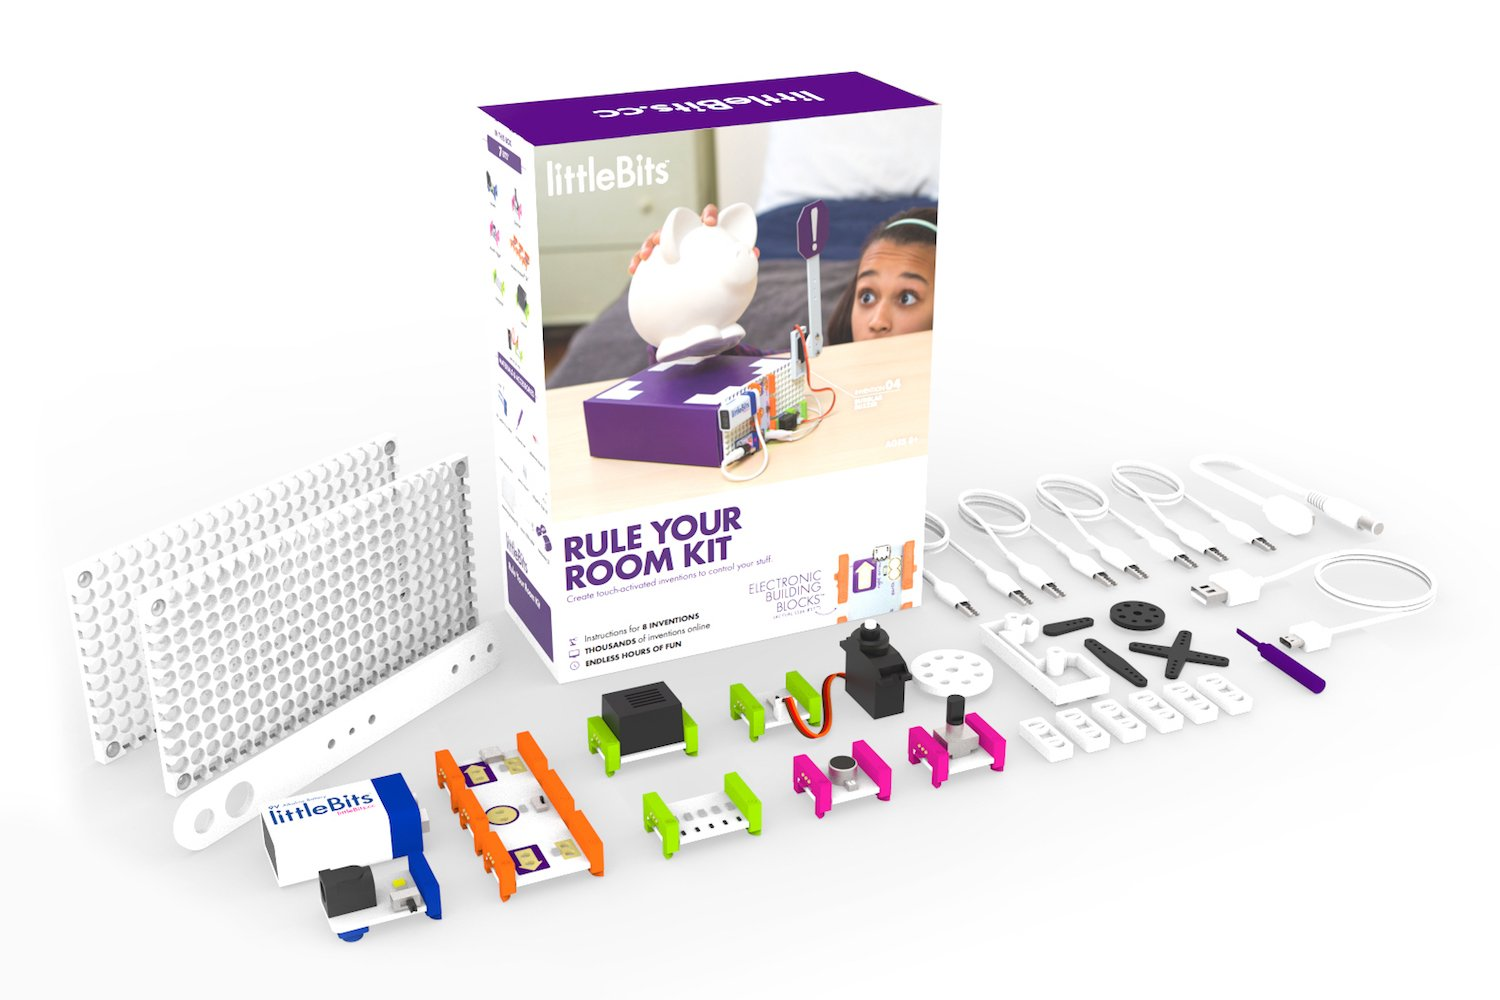 littleBits 電子工作 組み立てキット RULE YOUR ROOM KIT B0761JP25P